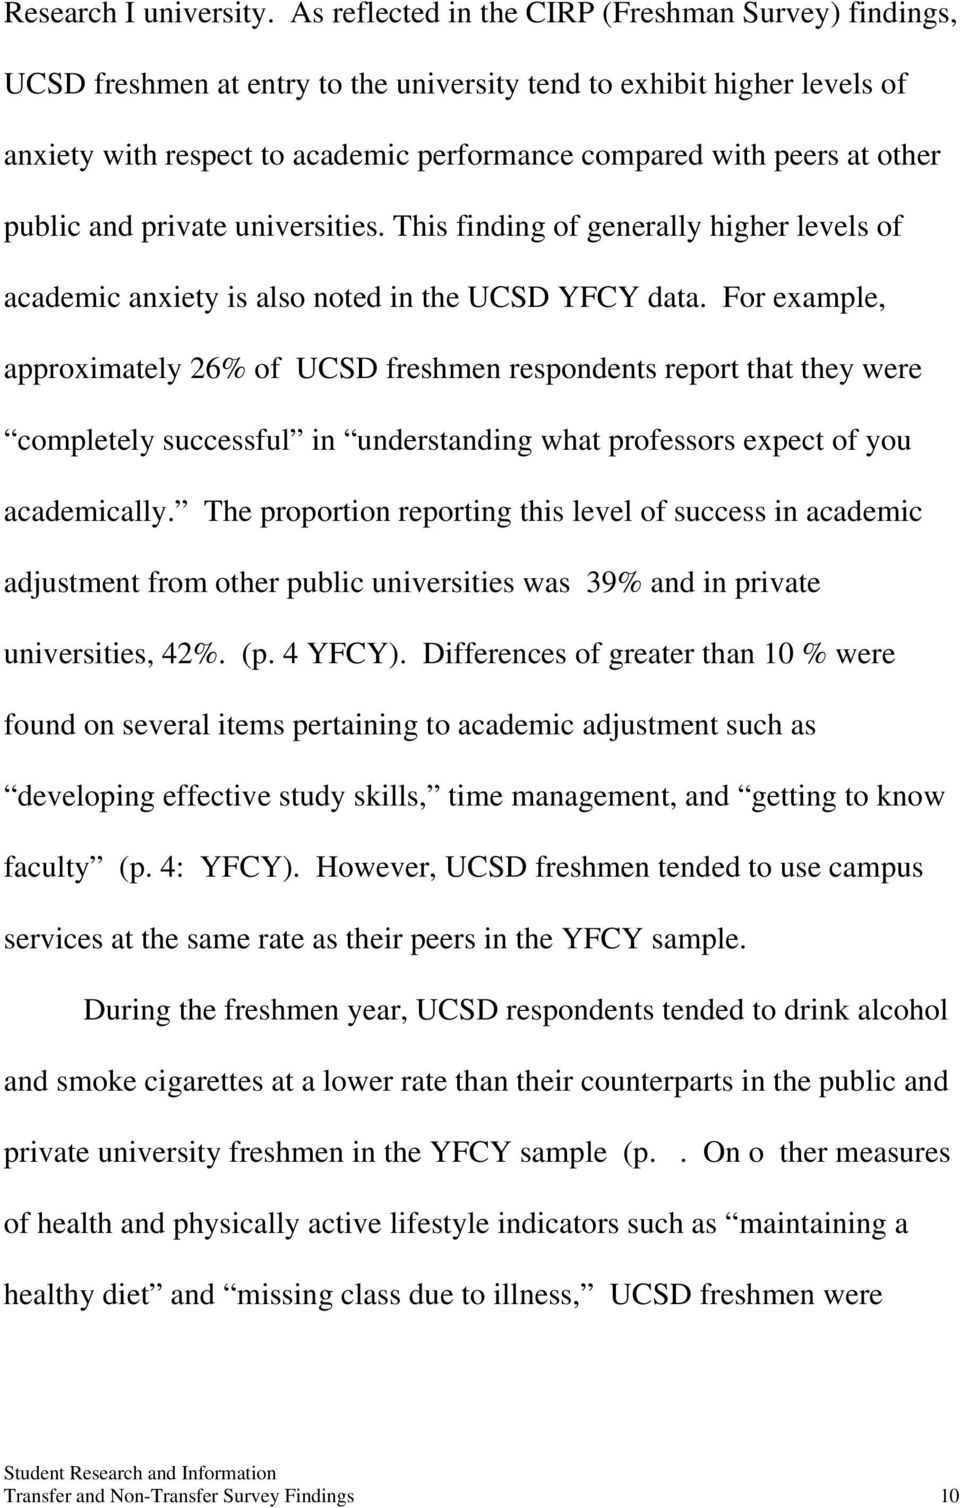 other public and private universities. This finding of generally higher levels of academic anxiety is also noted in the UCSD YFCY data.